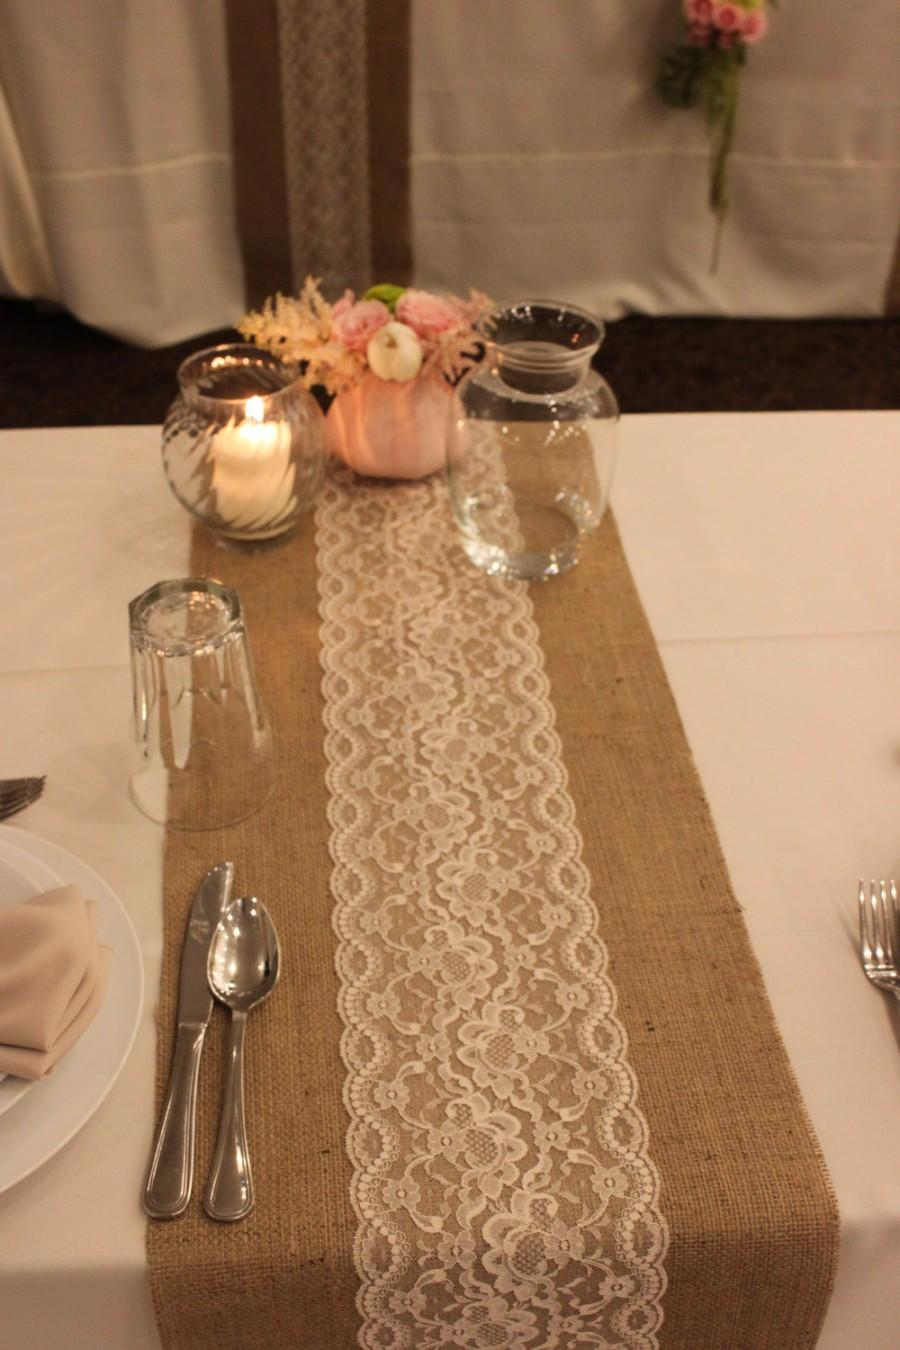 Sale 12 ft 12 x 144 burlap lace table runner wedding for 12 ft table runner